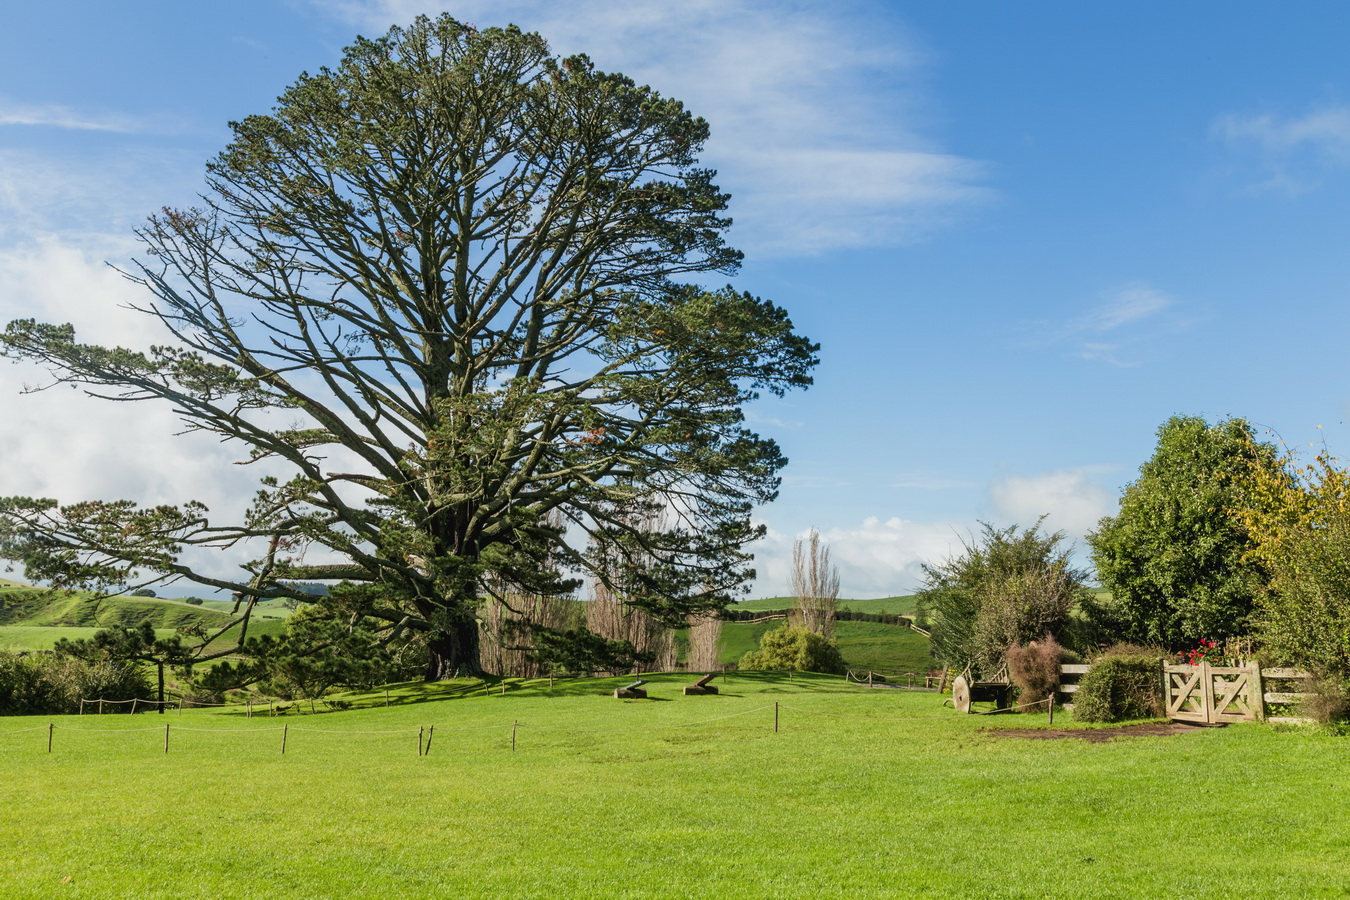 big tree,The Hobbiton, The Shire,Хоббитшир, Удел, Хоббитания, Заселье, Край,Matamata, North Island ,New Zealand